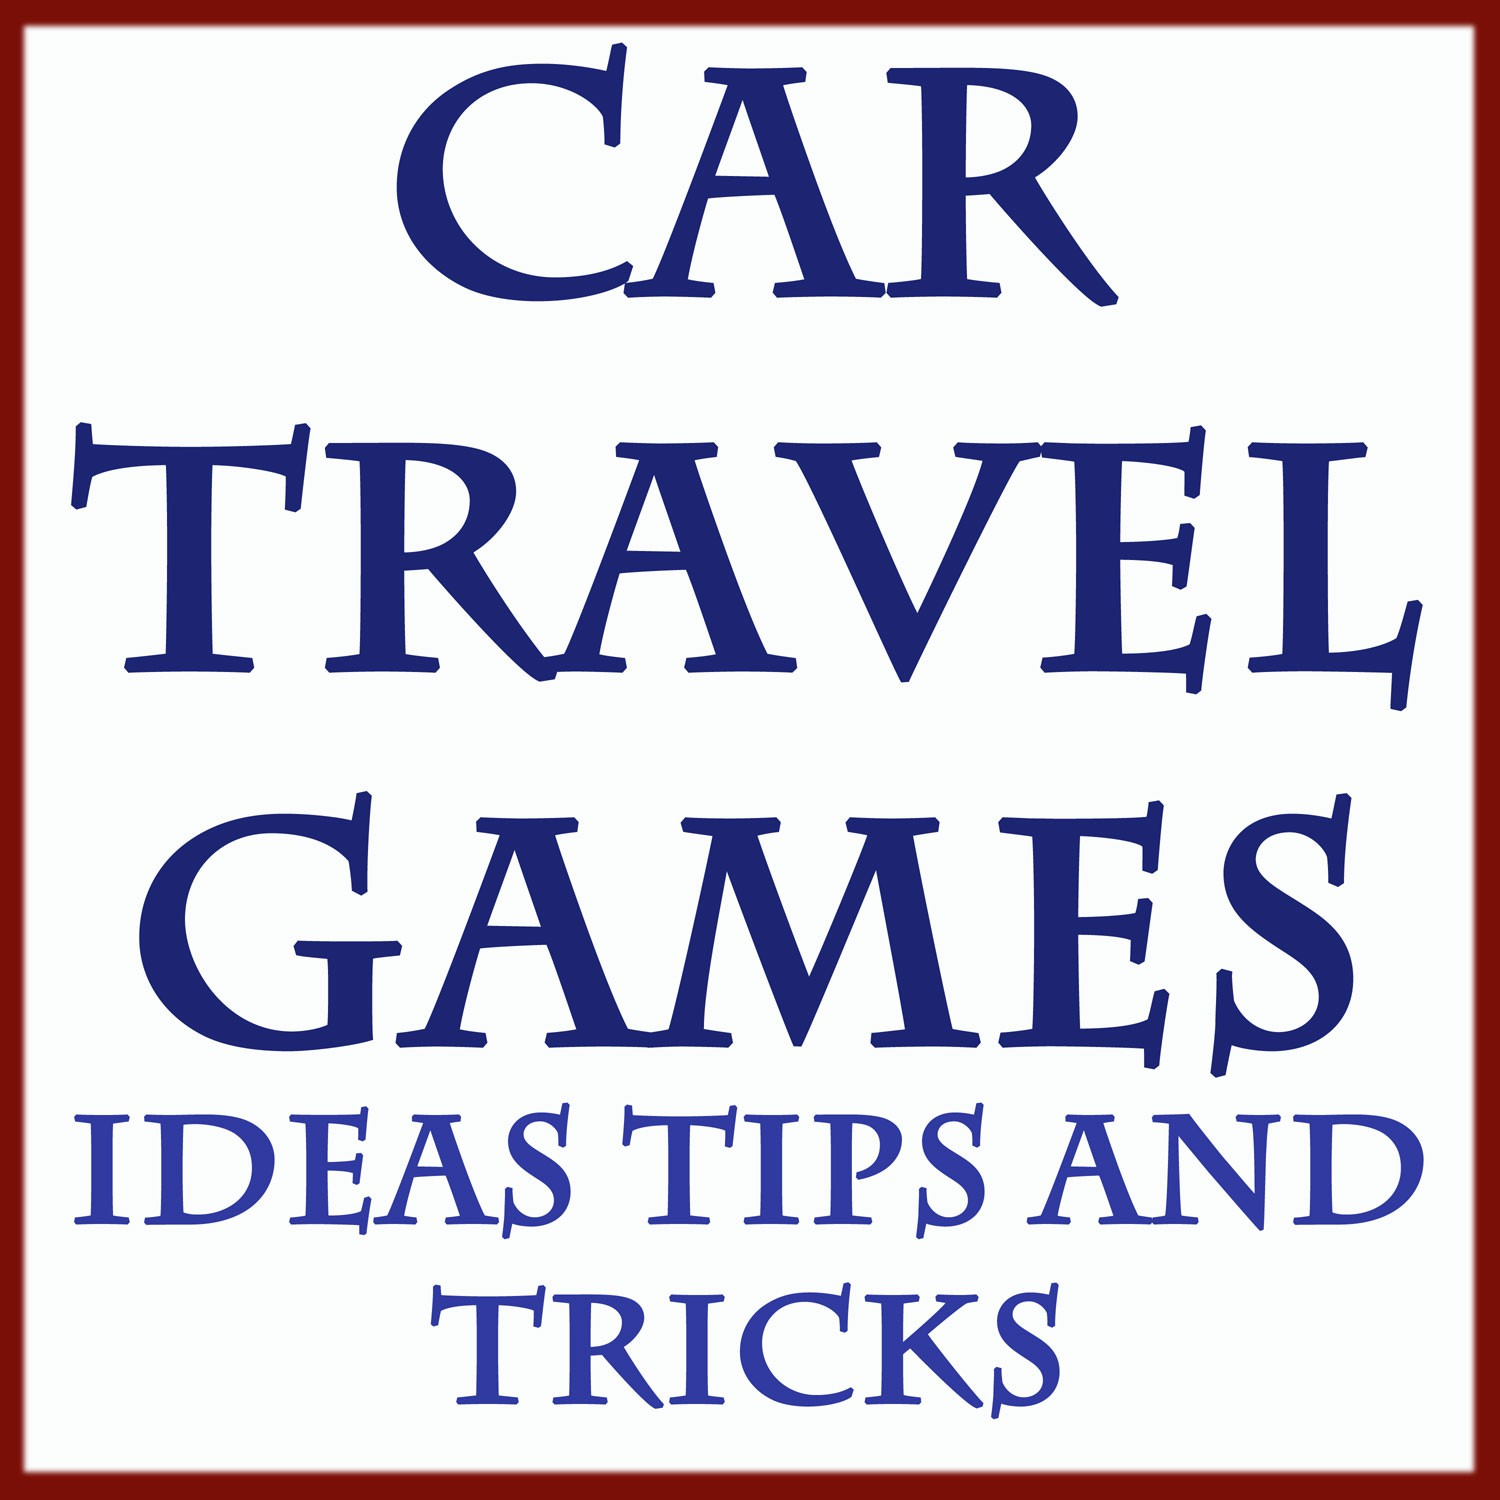 Car travel games